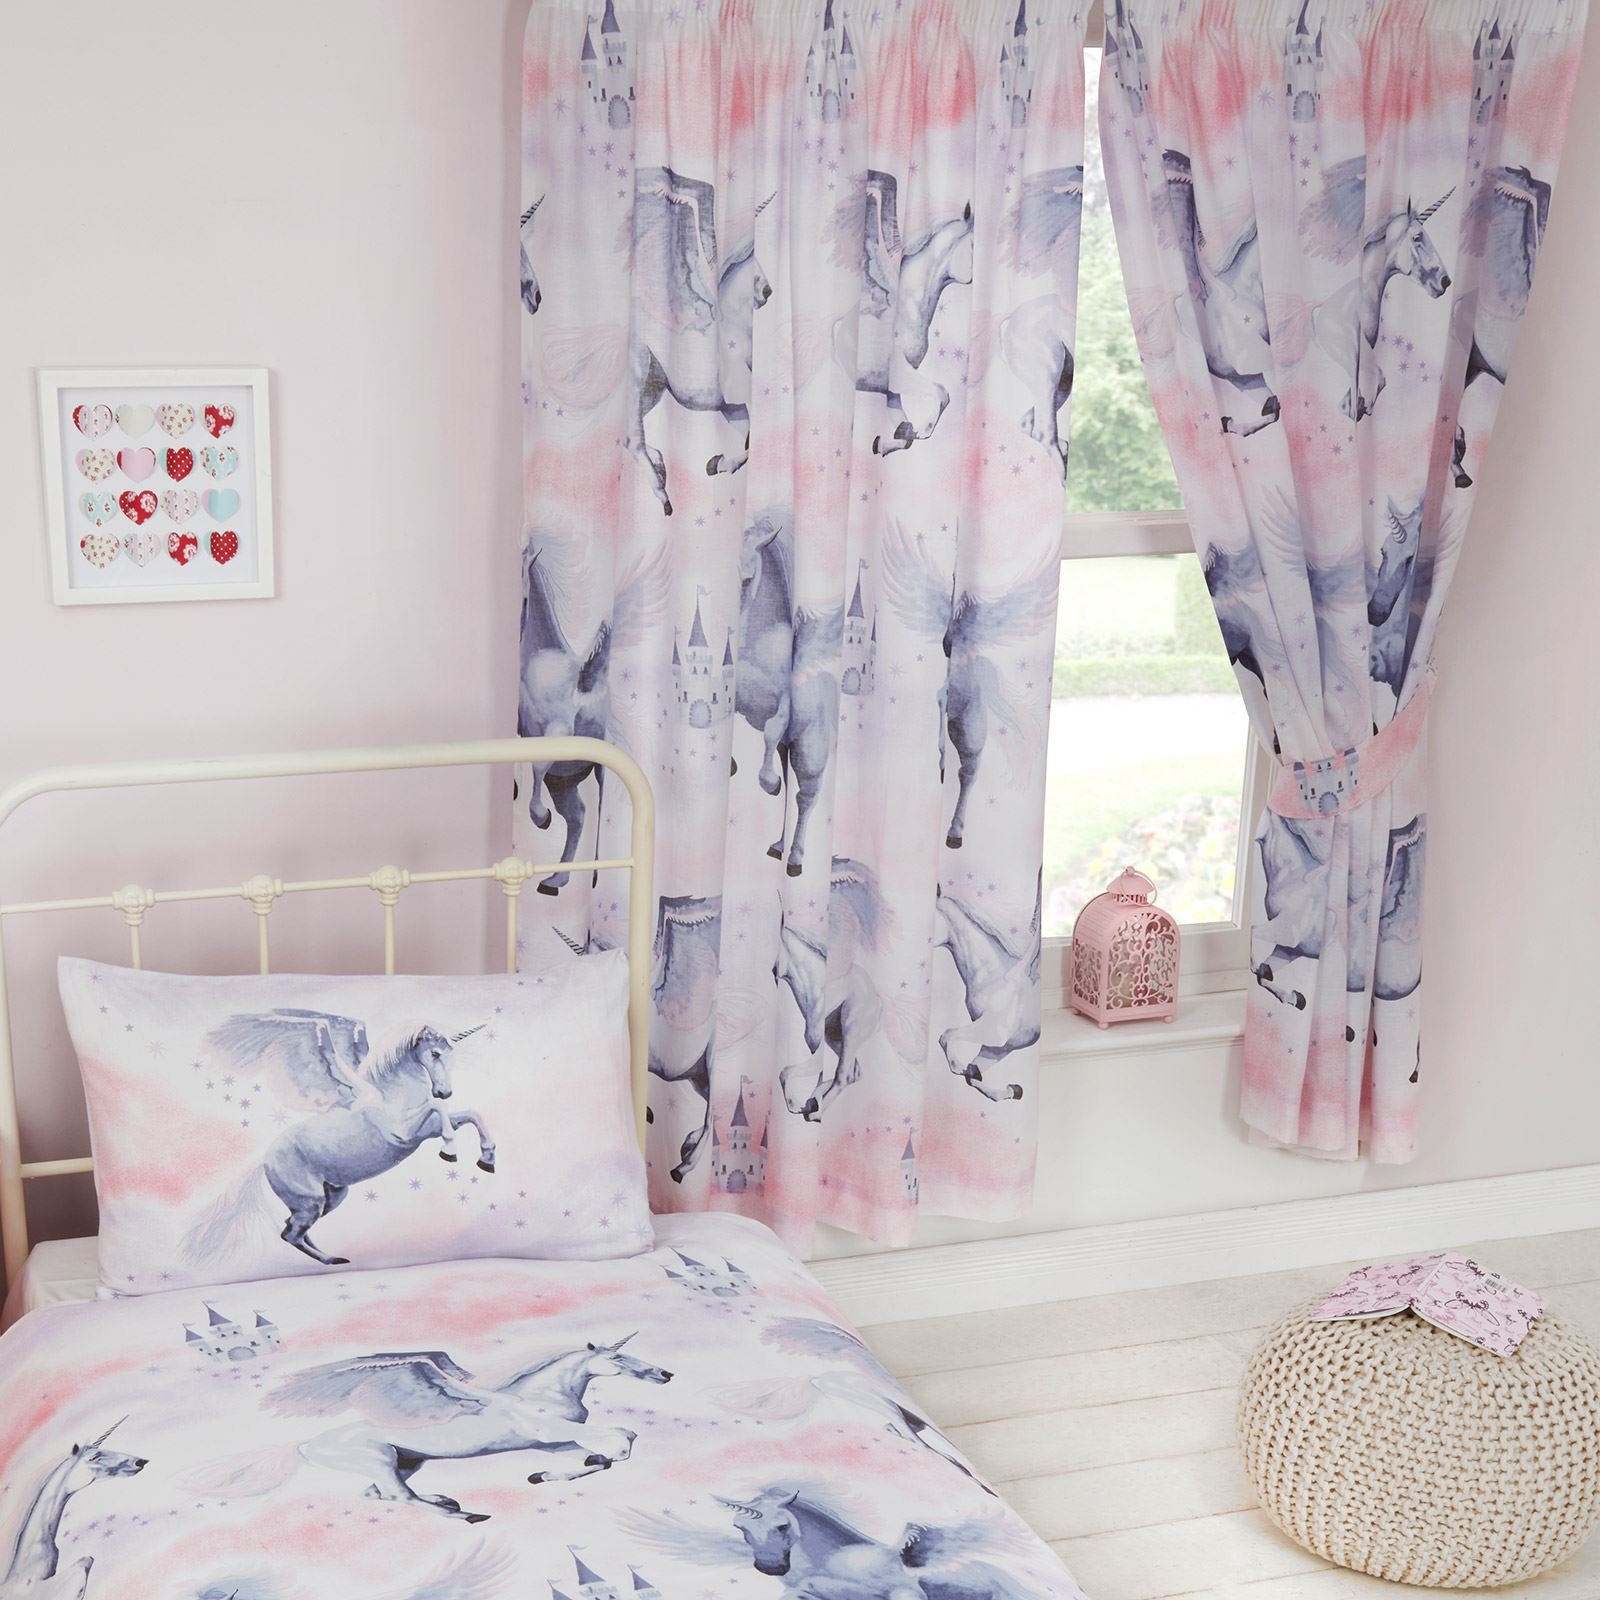 STARDUST UNICORN DUVET COVER SETS & MATCHING CURTAINS